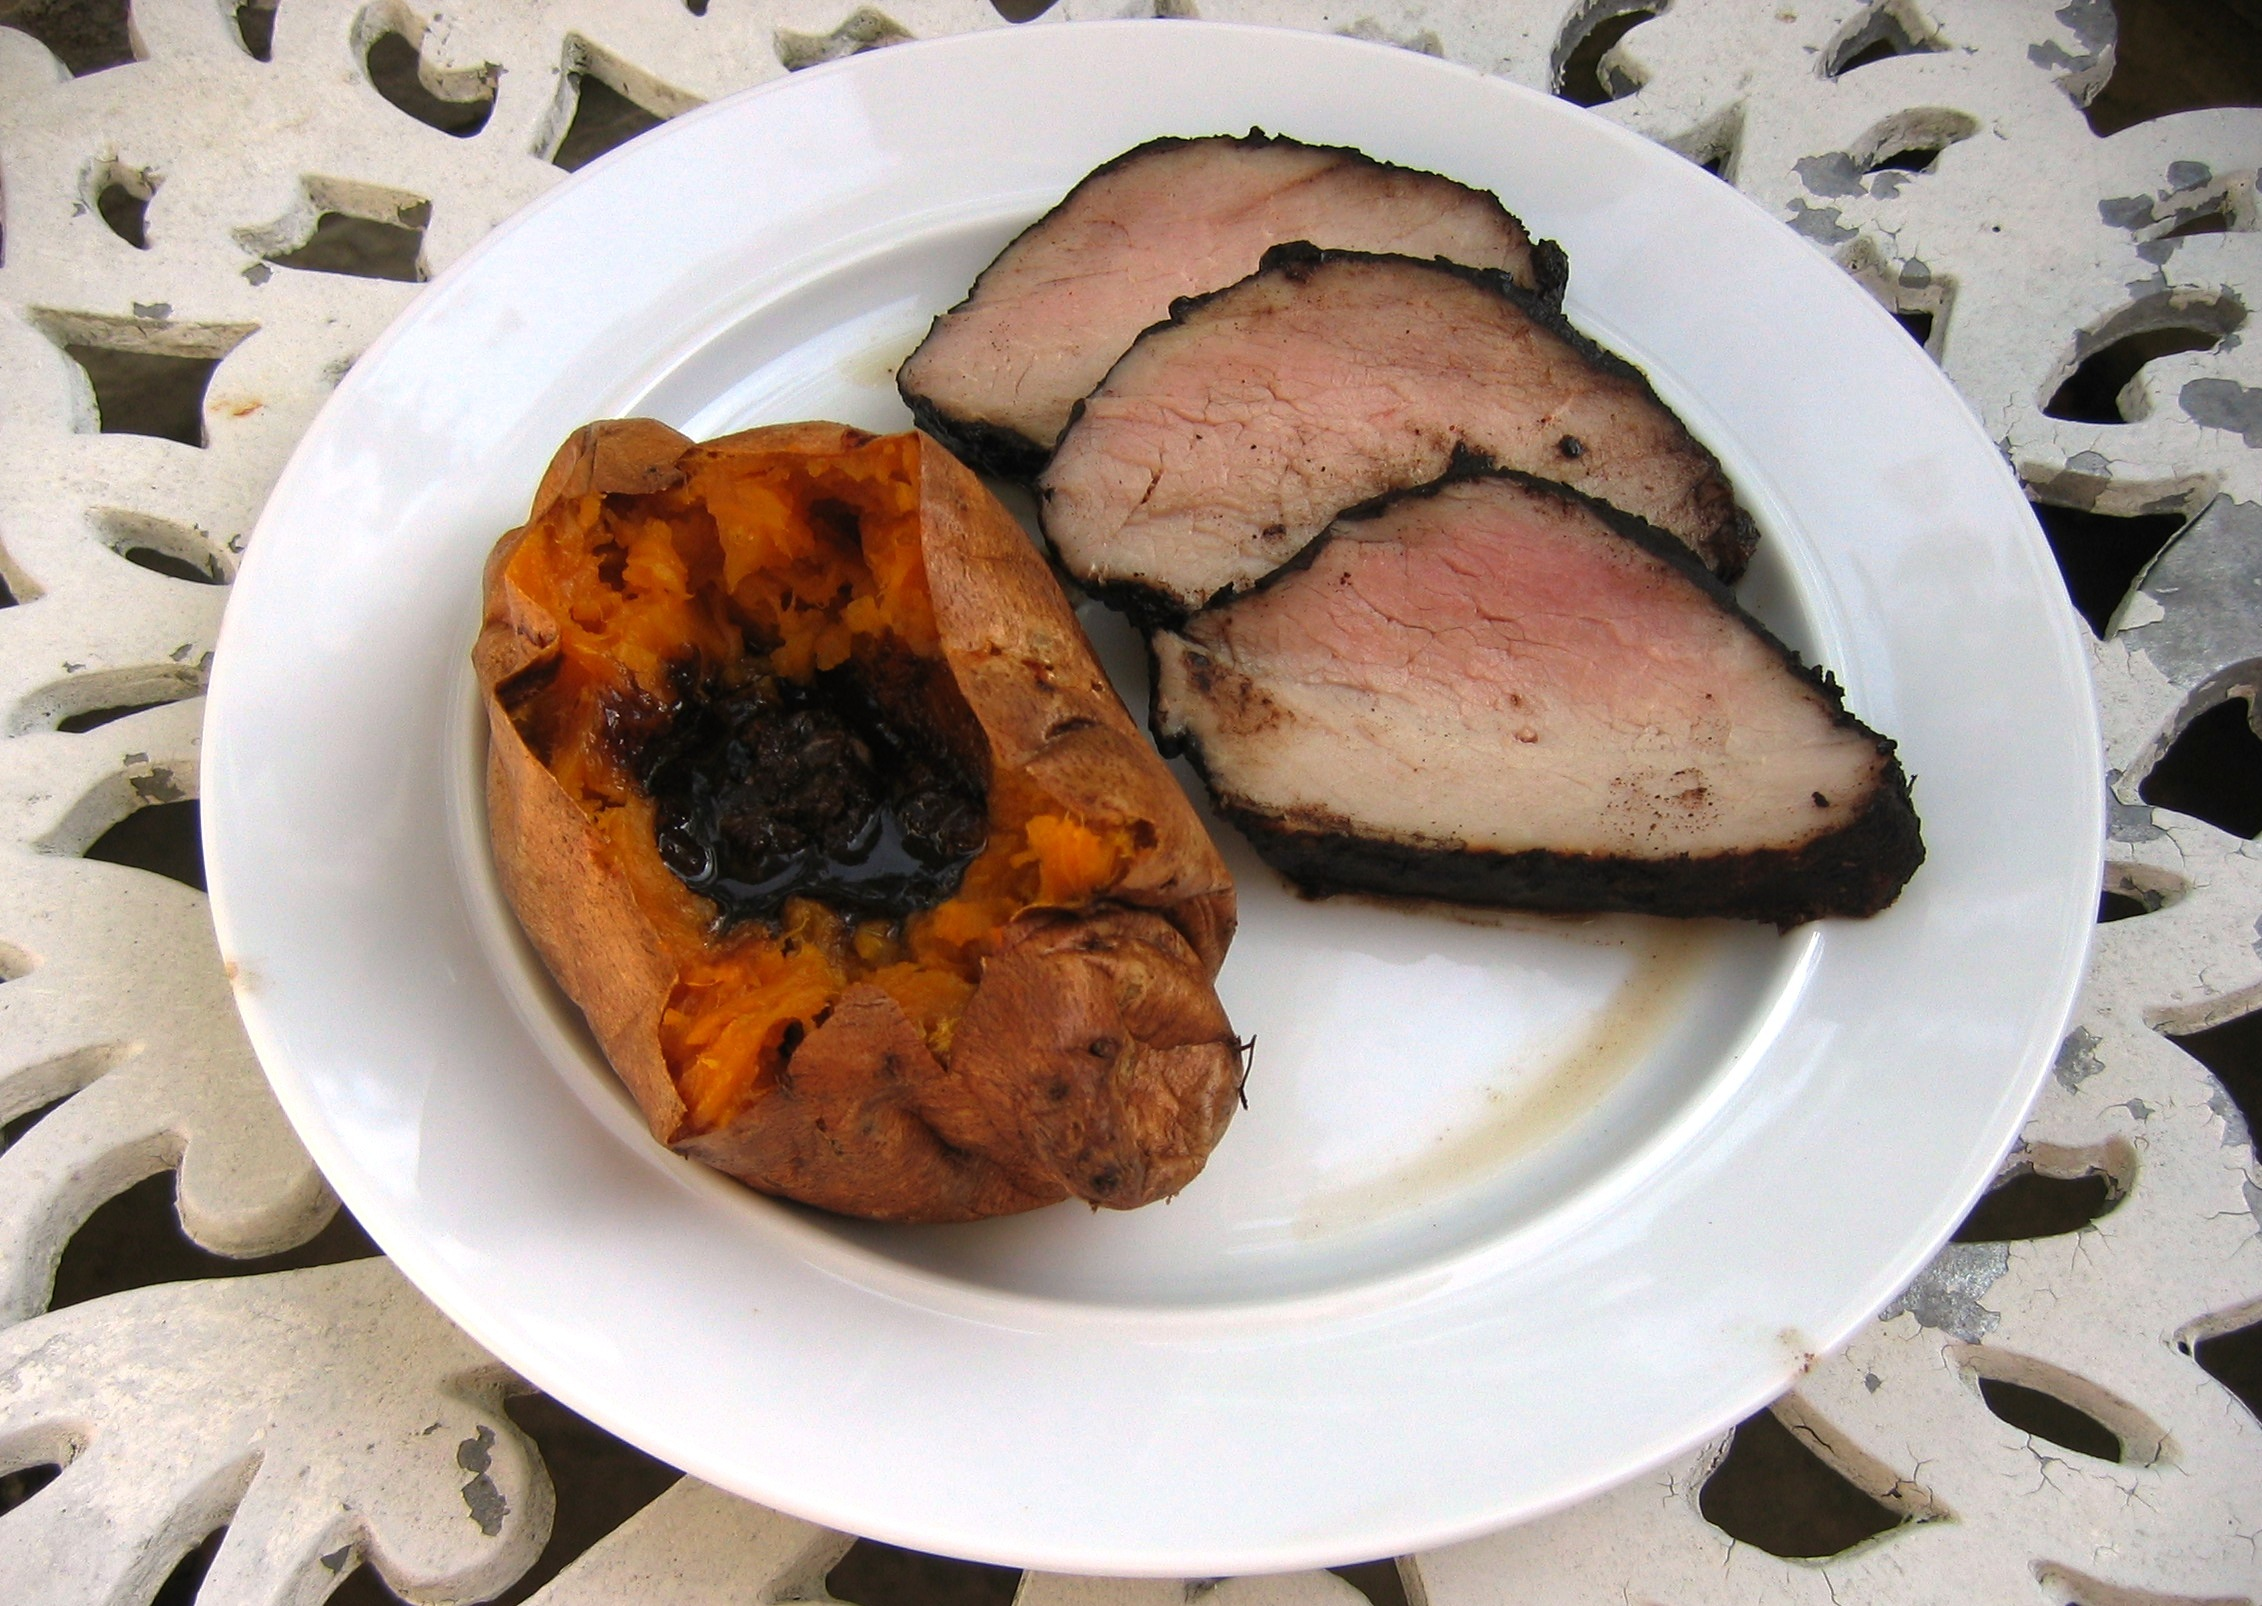 Spicy Mocha Pork Tenderloin with Baked Sweet Potato